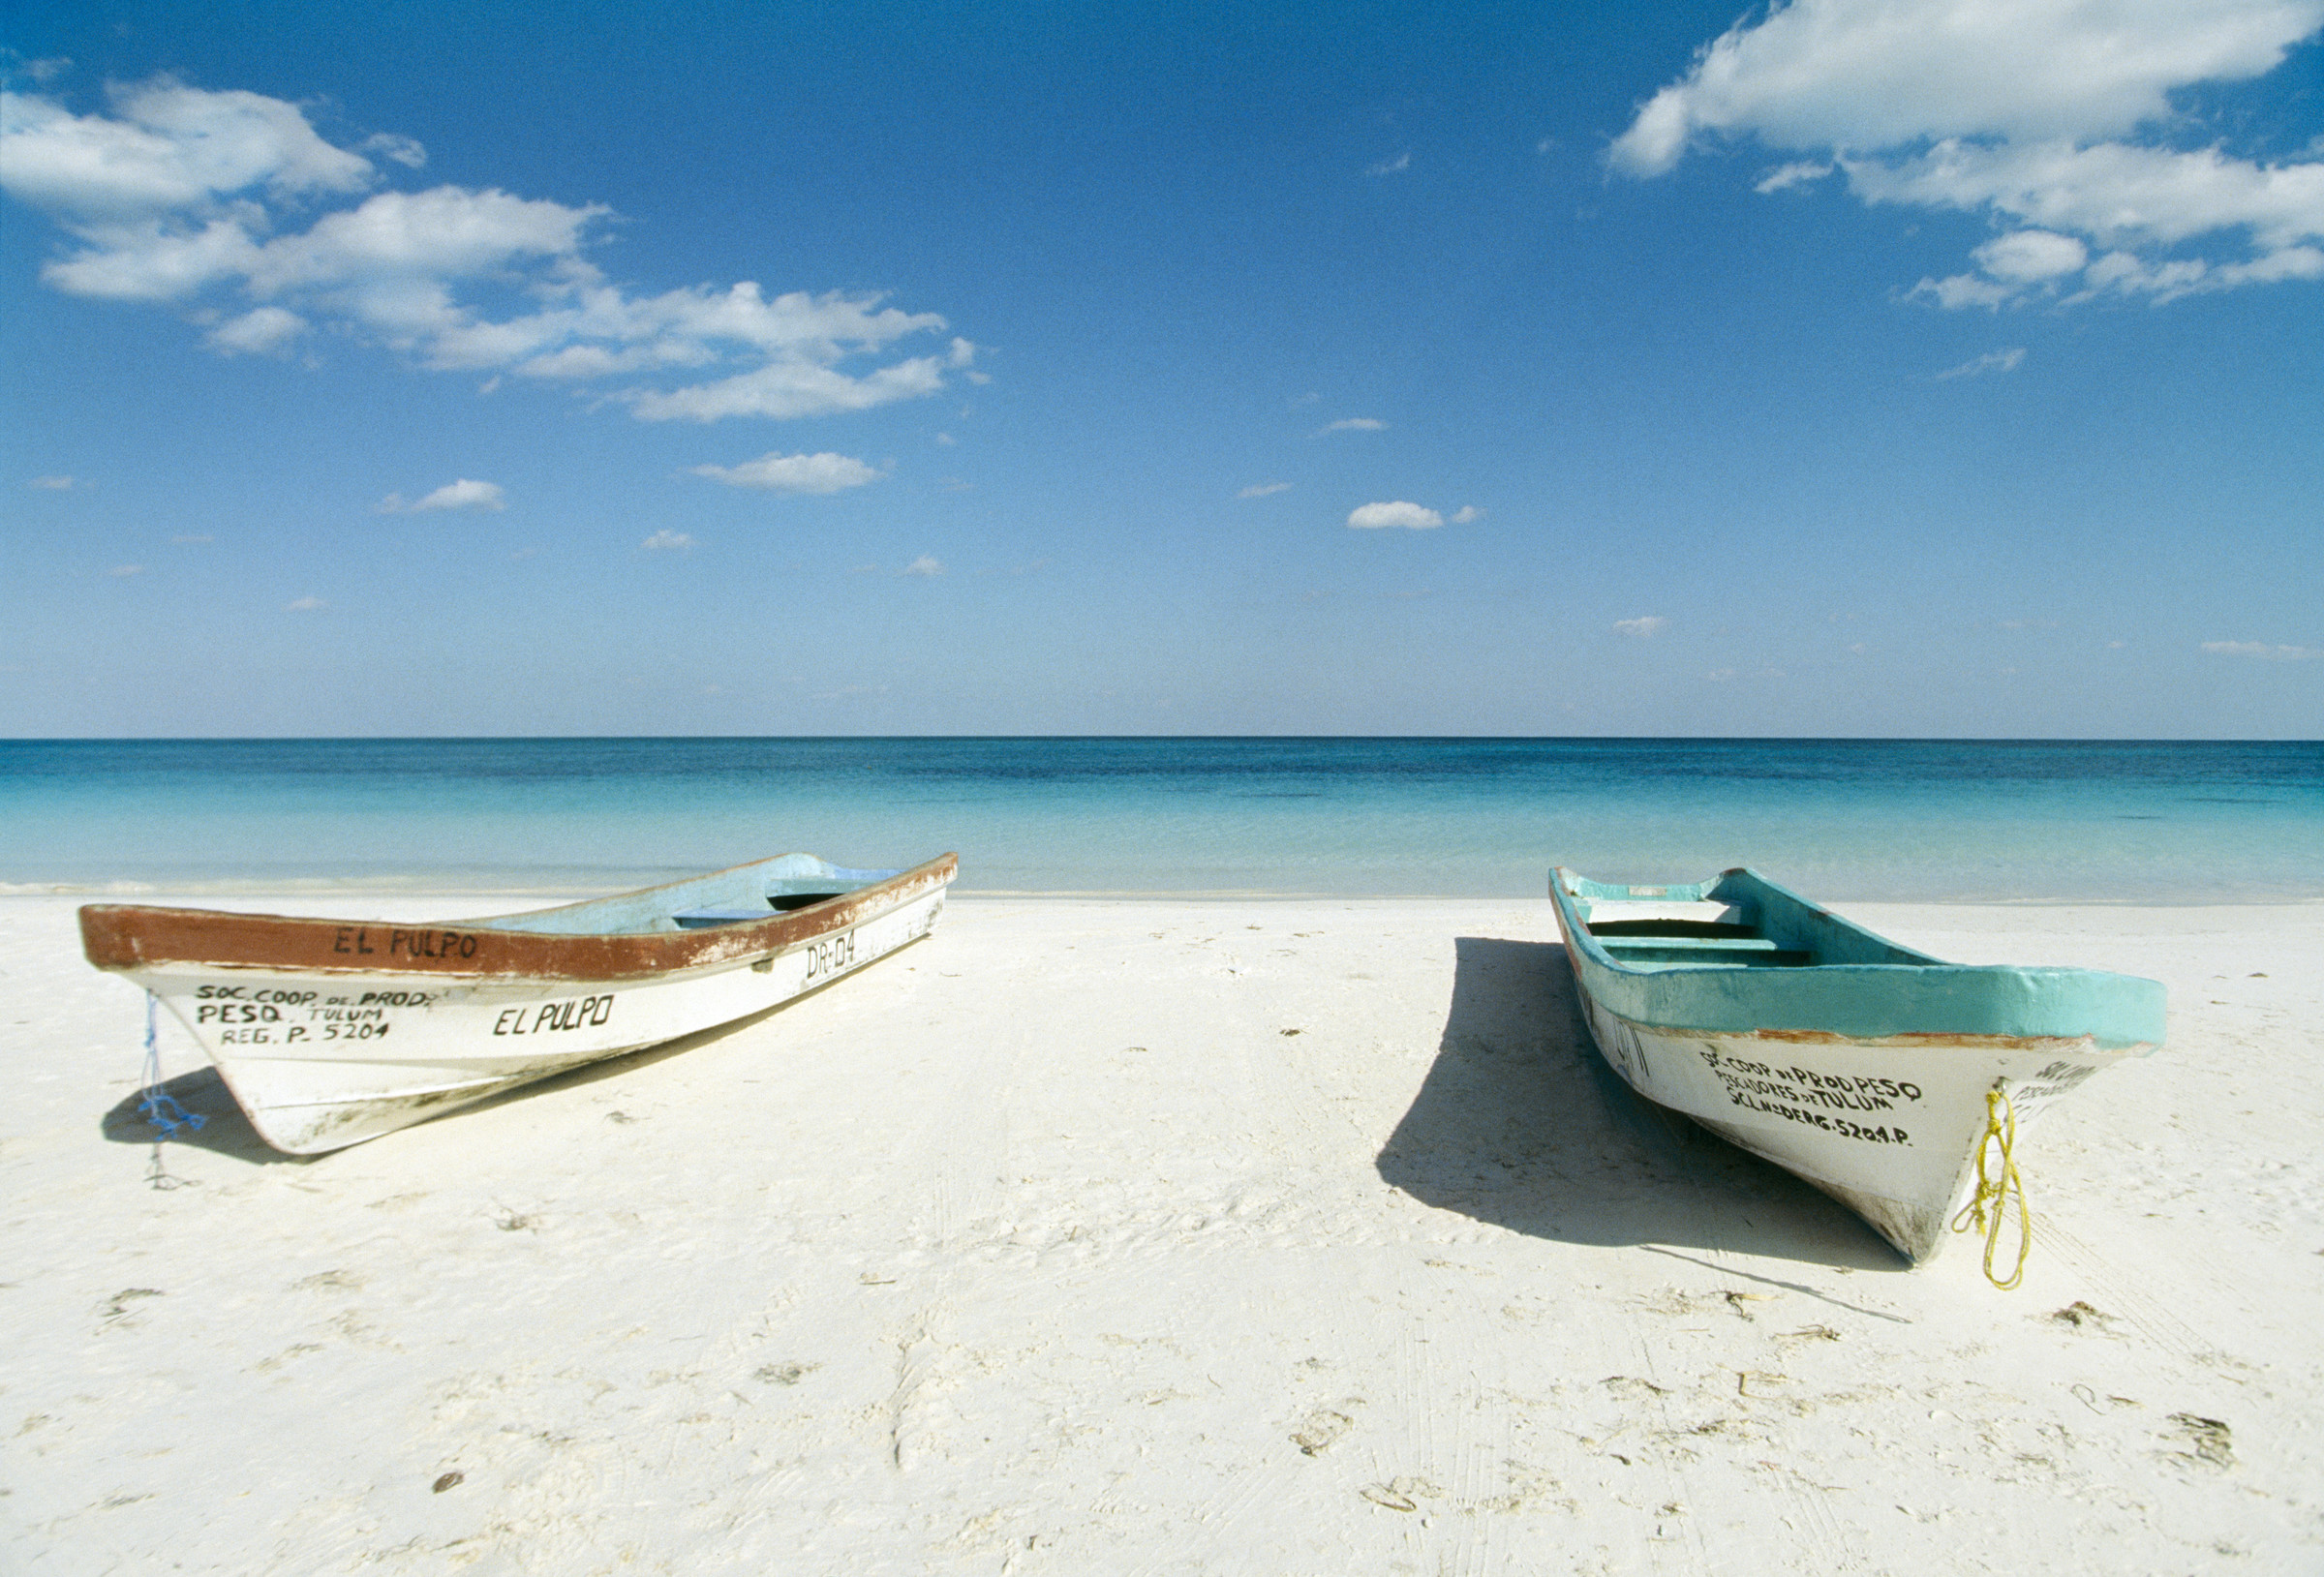 Boats on beach, Tulum, Quintana Roo, Mexico --- Image by © Erik P./zefa/Corbis